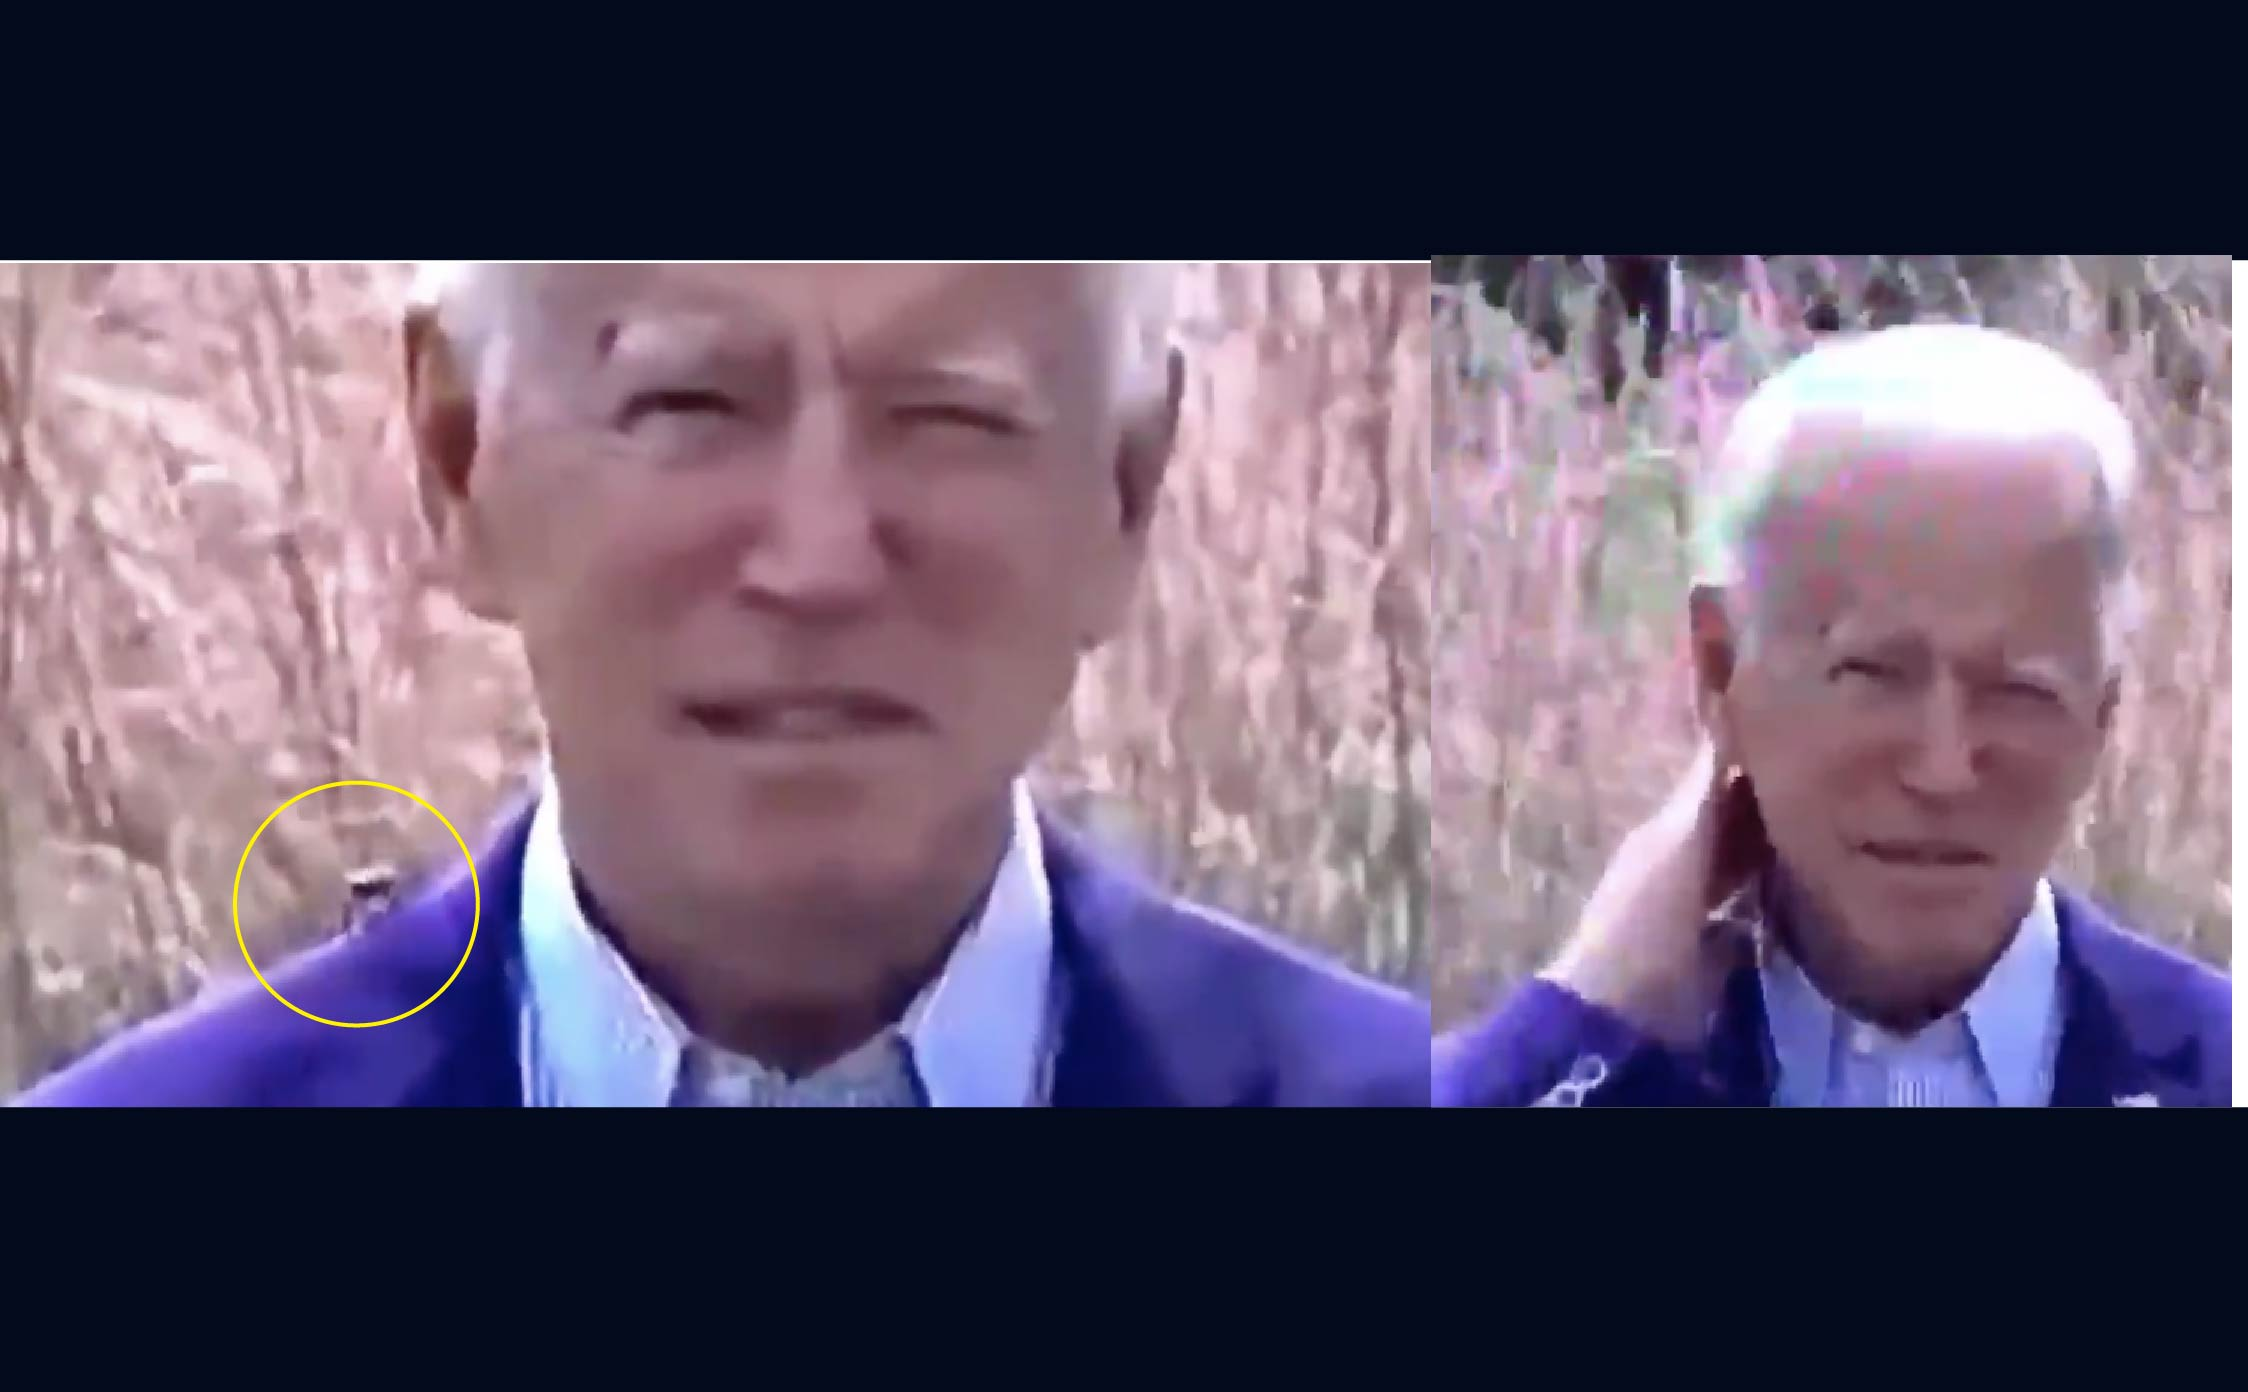 """[VIDEO] Pay Back? Giant Bug """"Sniffs"""" Around and """"Nuzzles"""" Biden's Neck During Live-Stream Speech"""